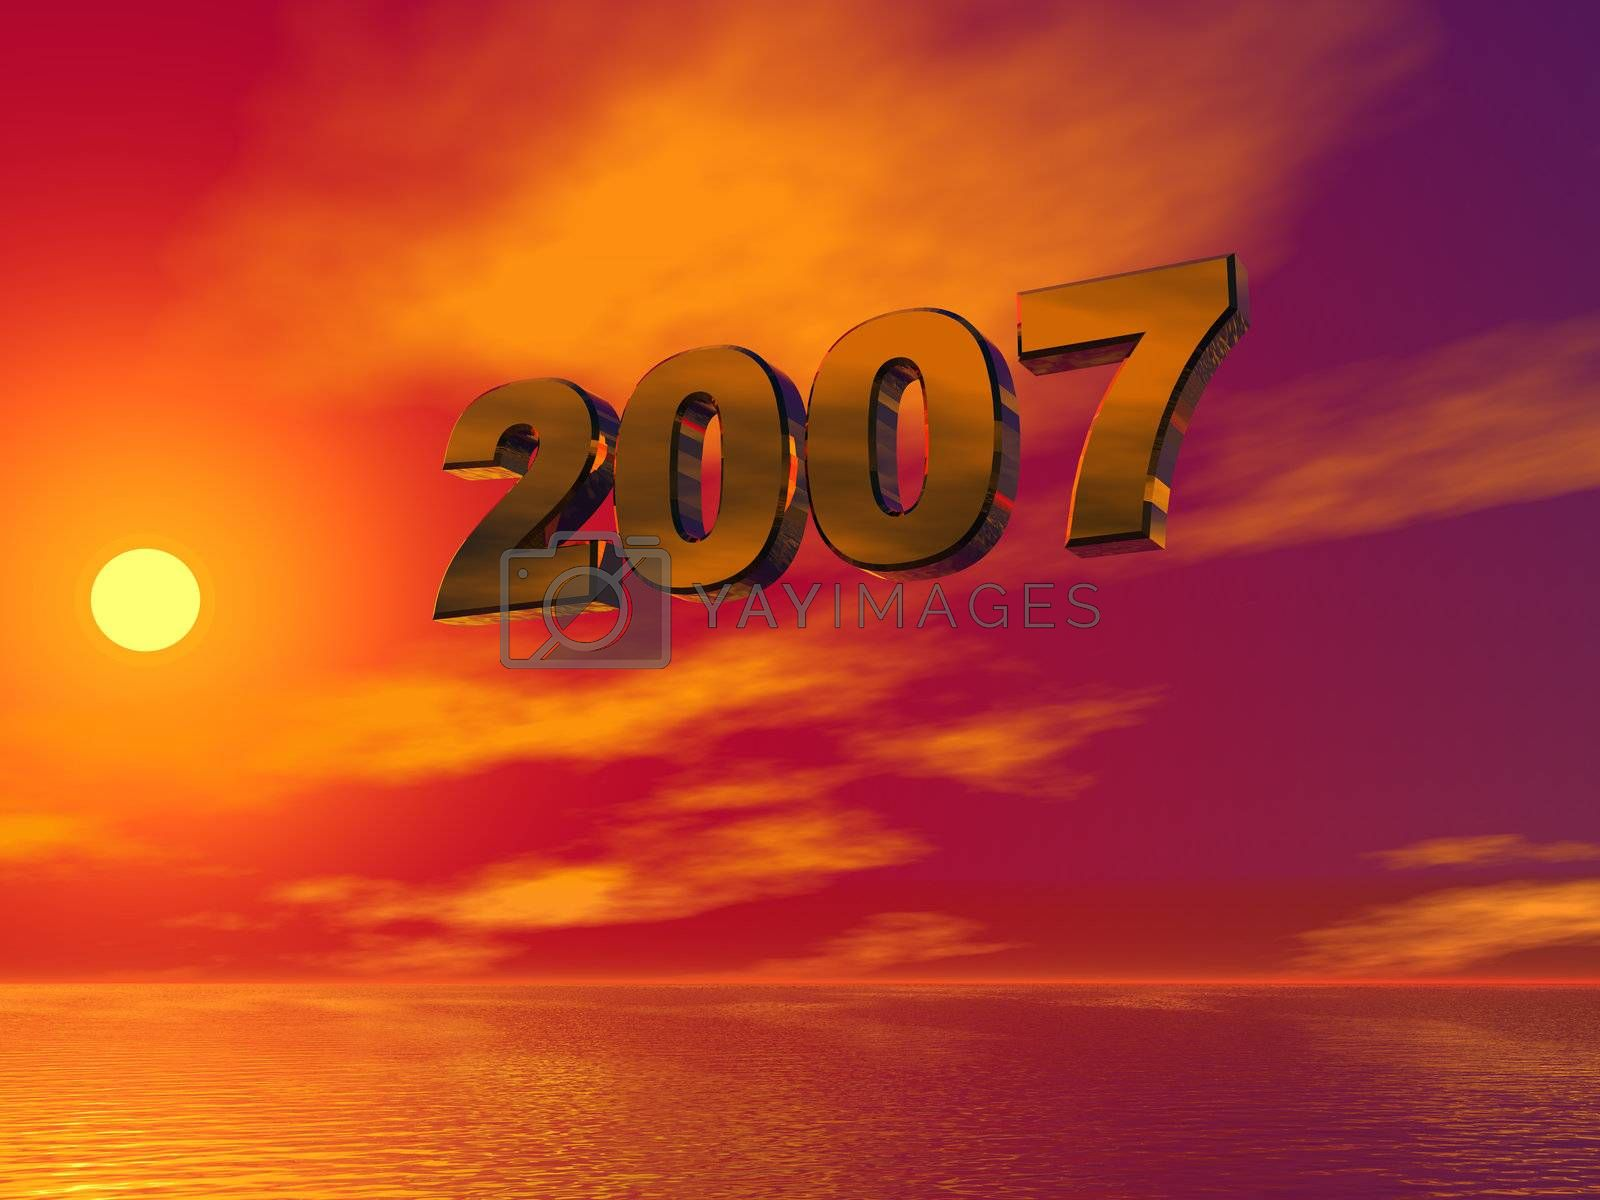 2007 text in 3d against colorful sky